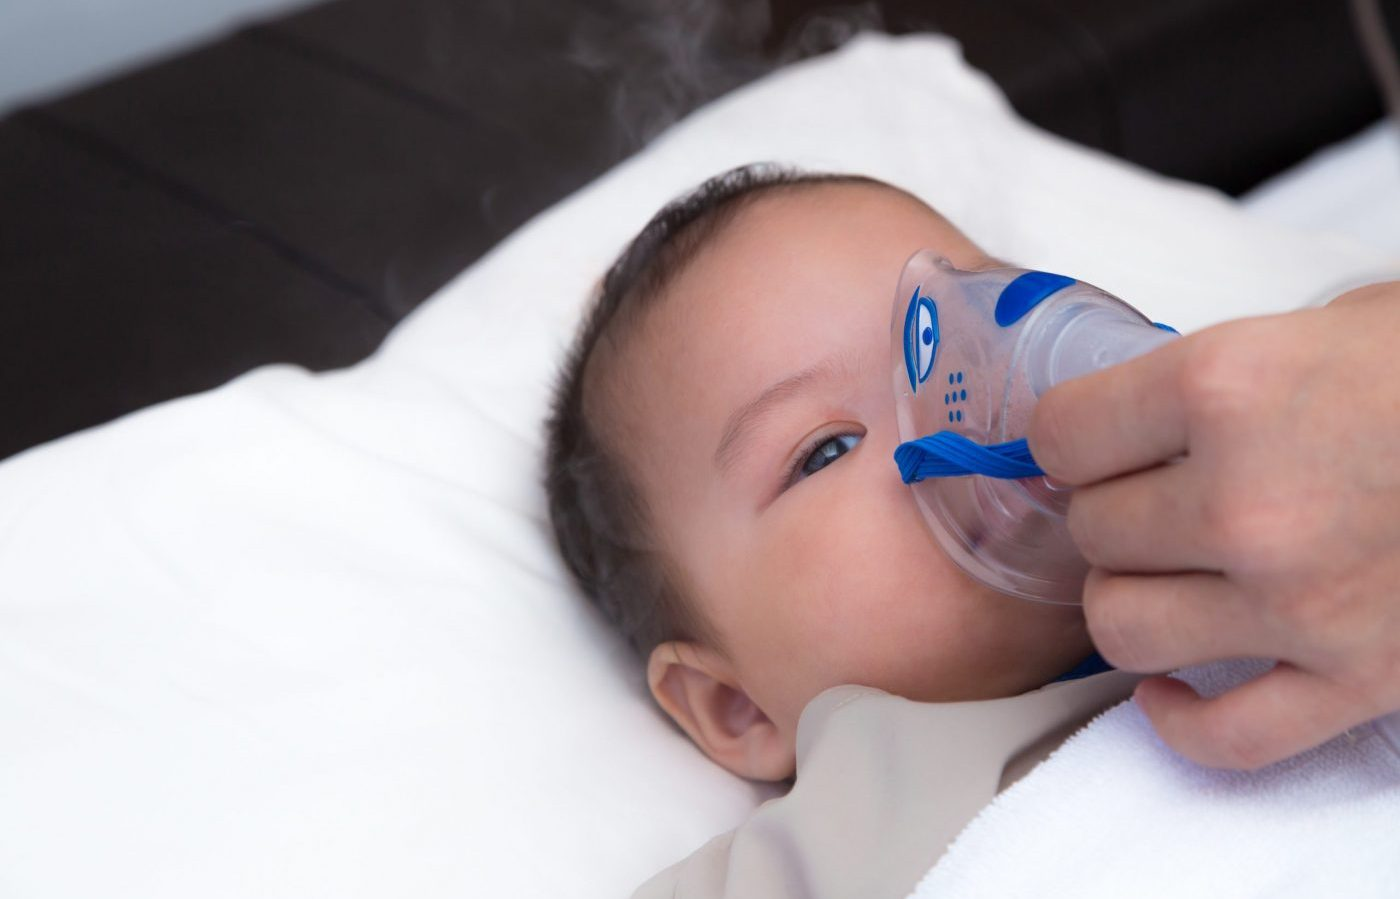 5 months old baby with respiratory syncytial virus, inhaling medication through inhalation mask